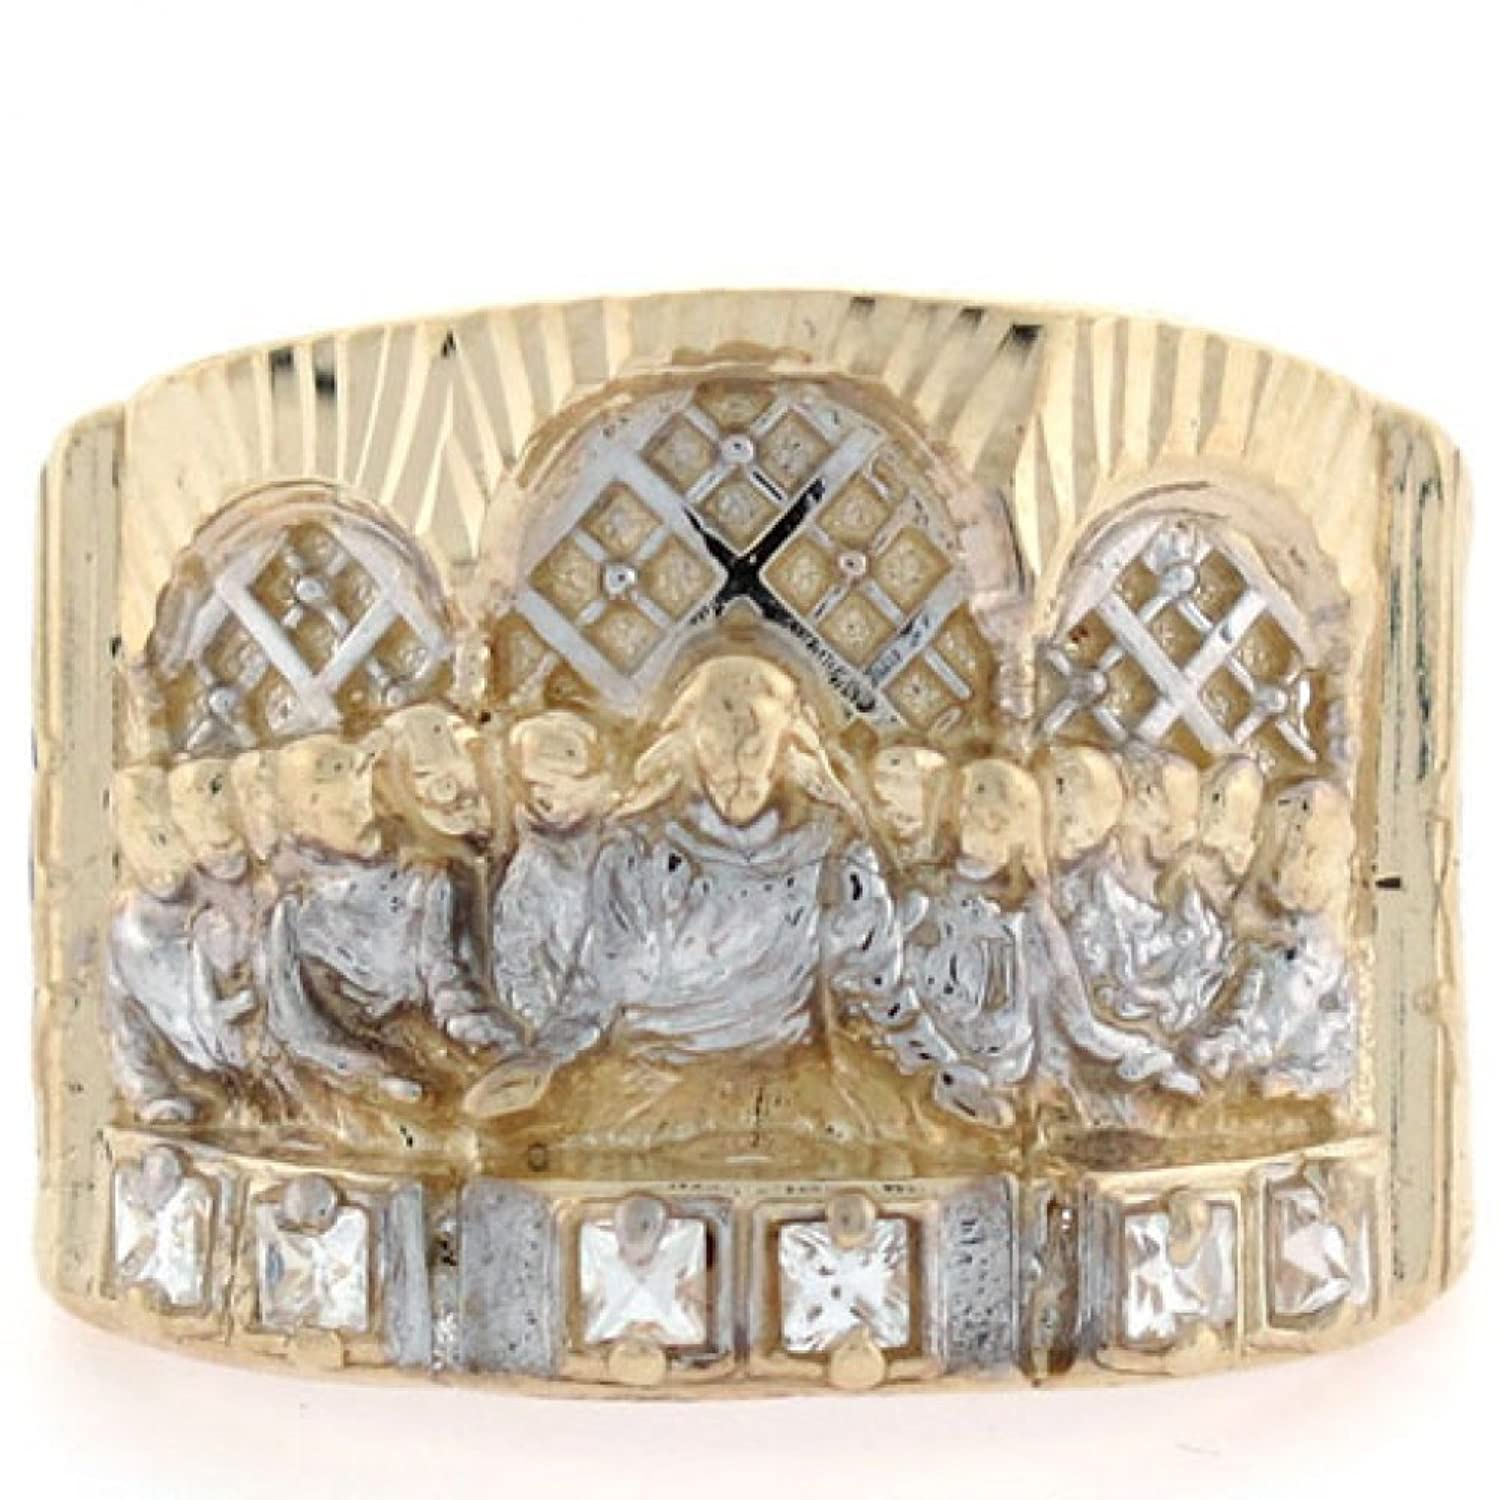 10k Two-Tone Gold Religious Jesus Last Supper Mens Ring